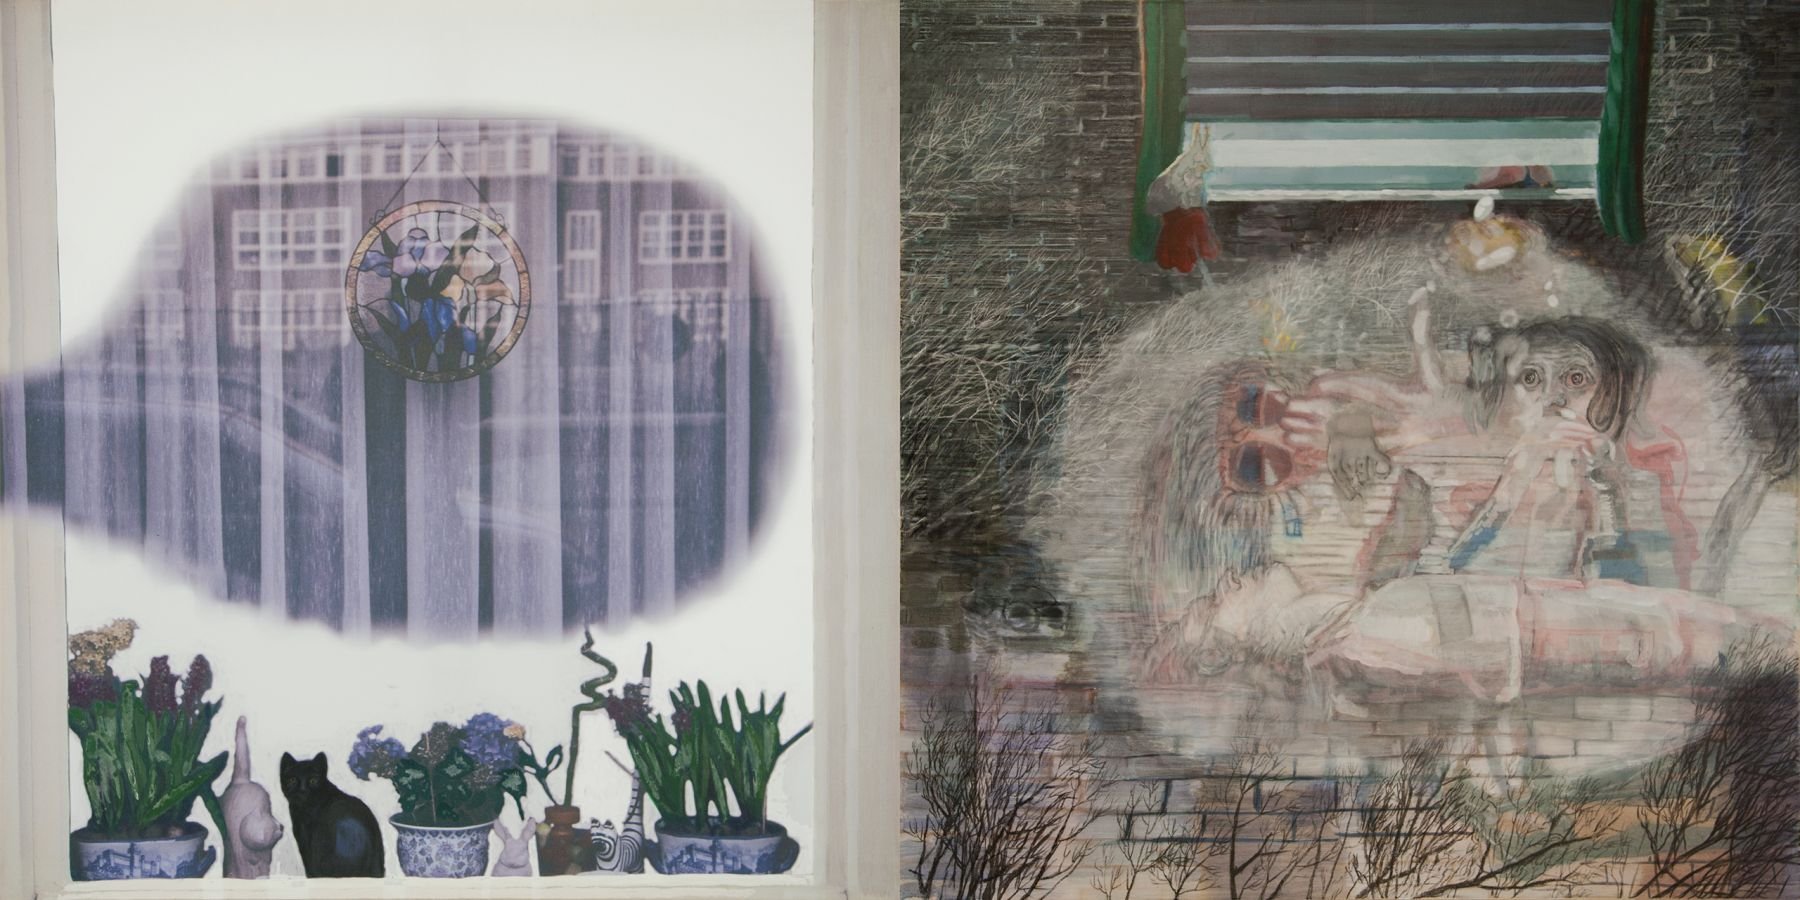 28. The Smoke Curtain, 2006-2007, charcoal/acrylic/tempera/oil/print/canvas, 200 x 400 cm